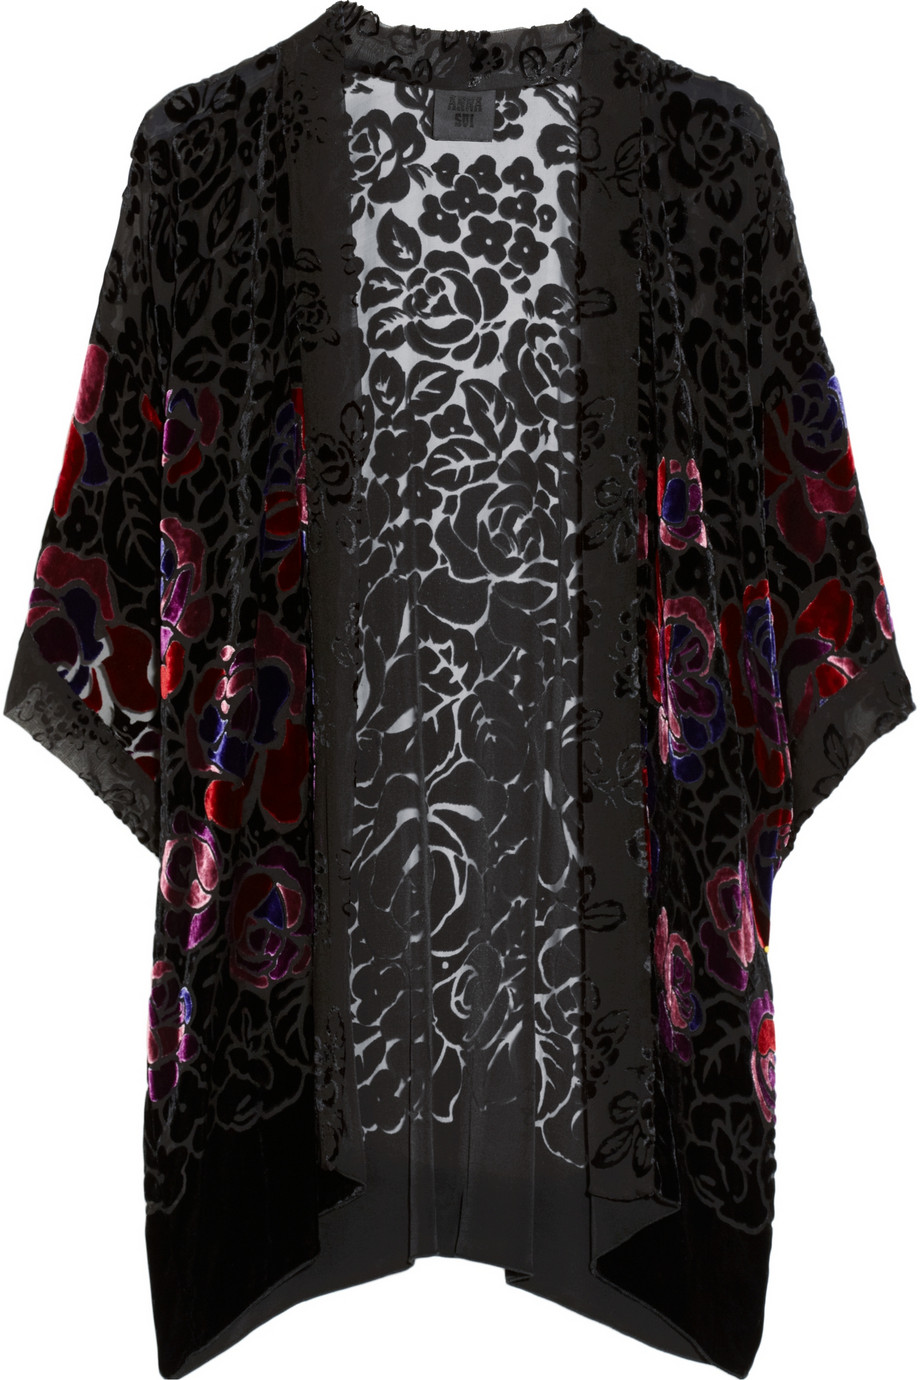 Anna Sui Rose Patterned Burnout Velvet Kimono Style Jacket